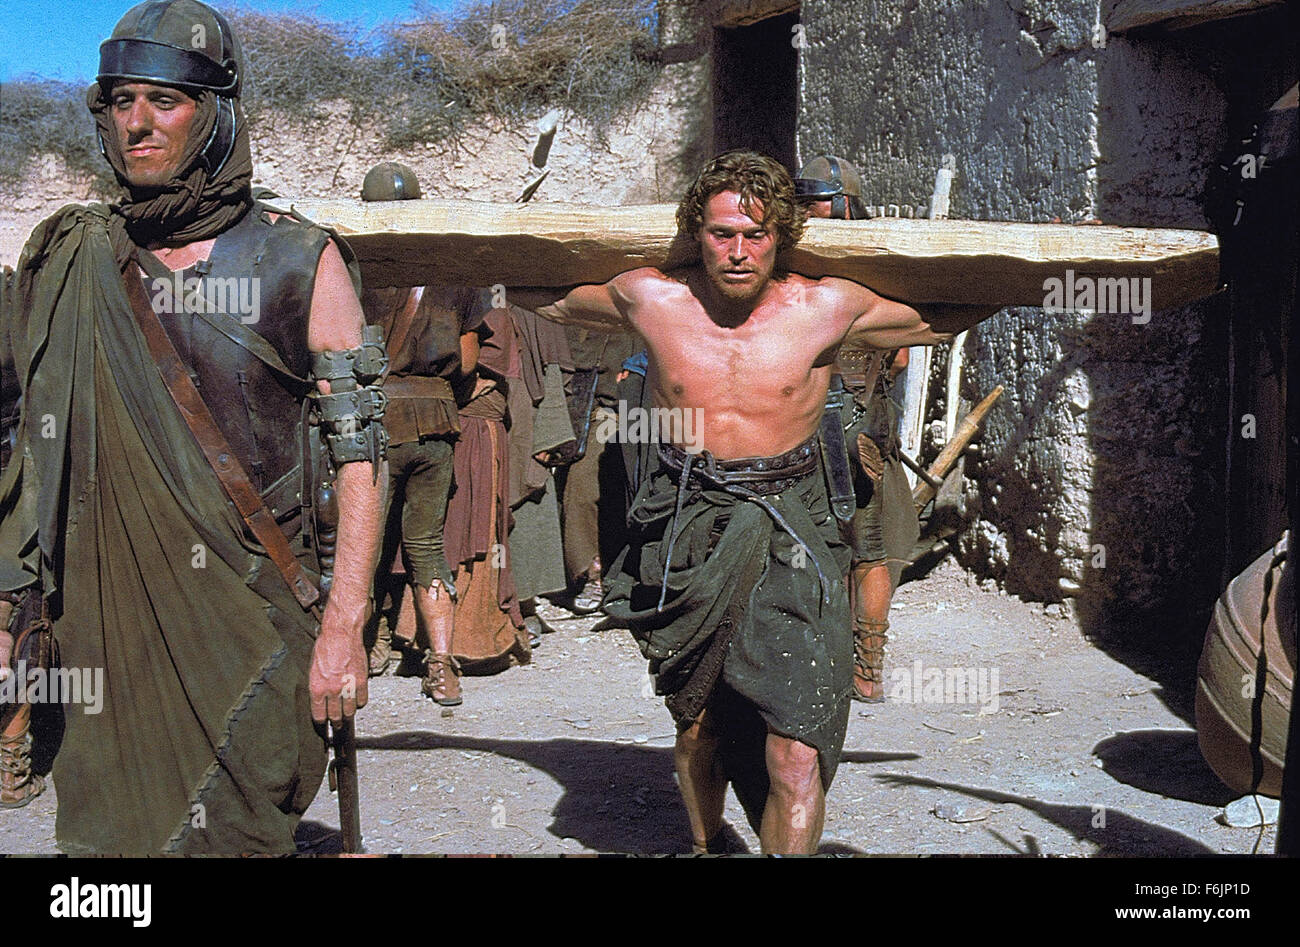 RELEASE DATE: August 12, 1988. MOVIE TITLE: The Last Temptation of Christ. STUDIO: Universal Pictures. PLOT: The - Stock Image